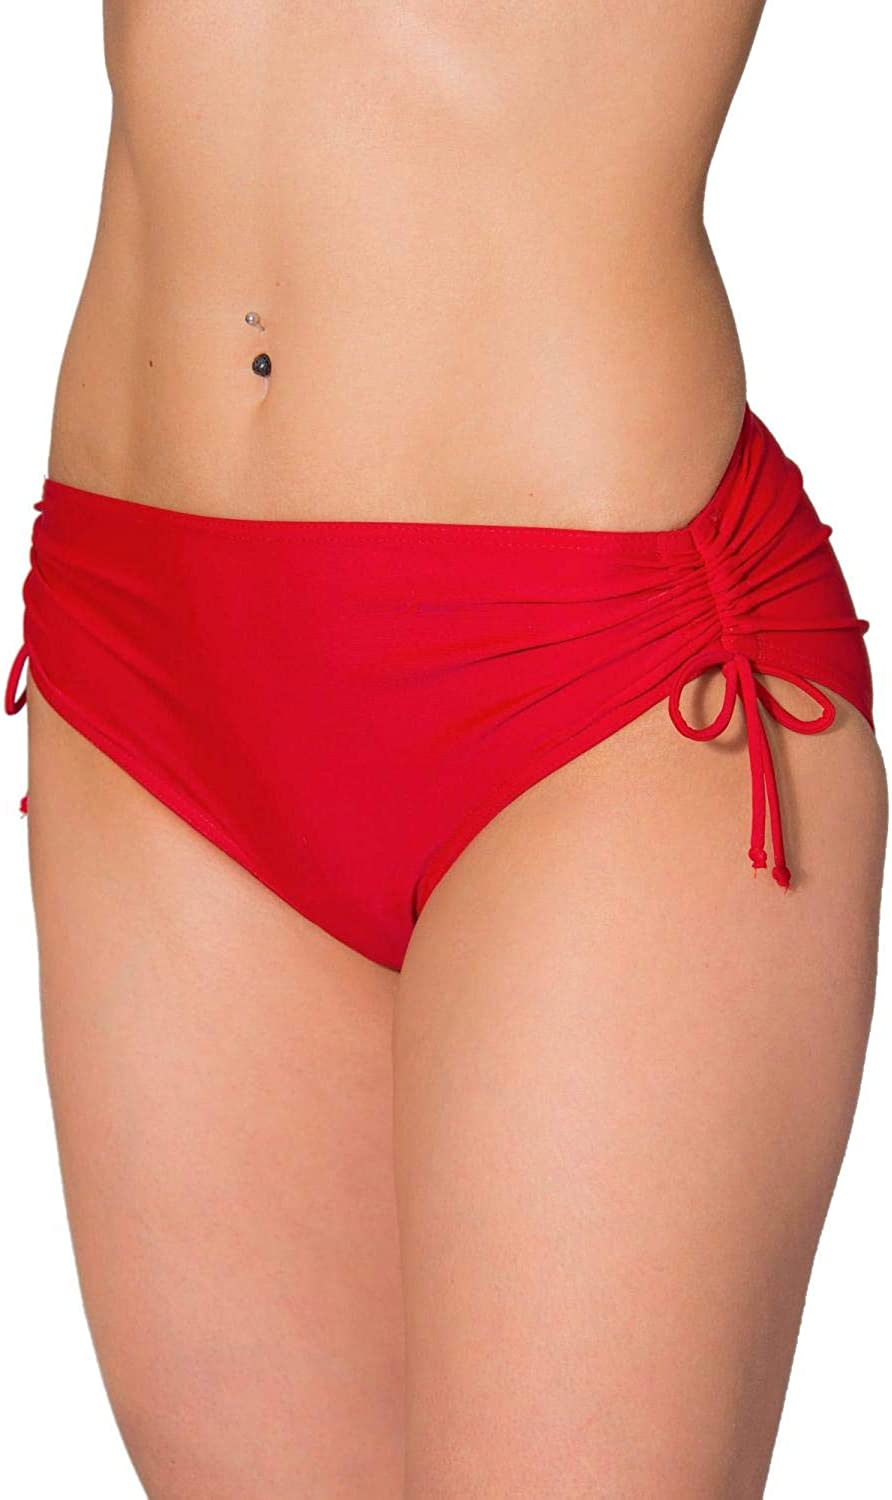 Aquarti Womens Bikini Bottom with Side Drawstrings